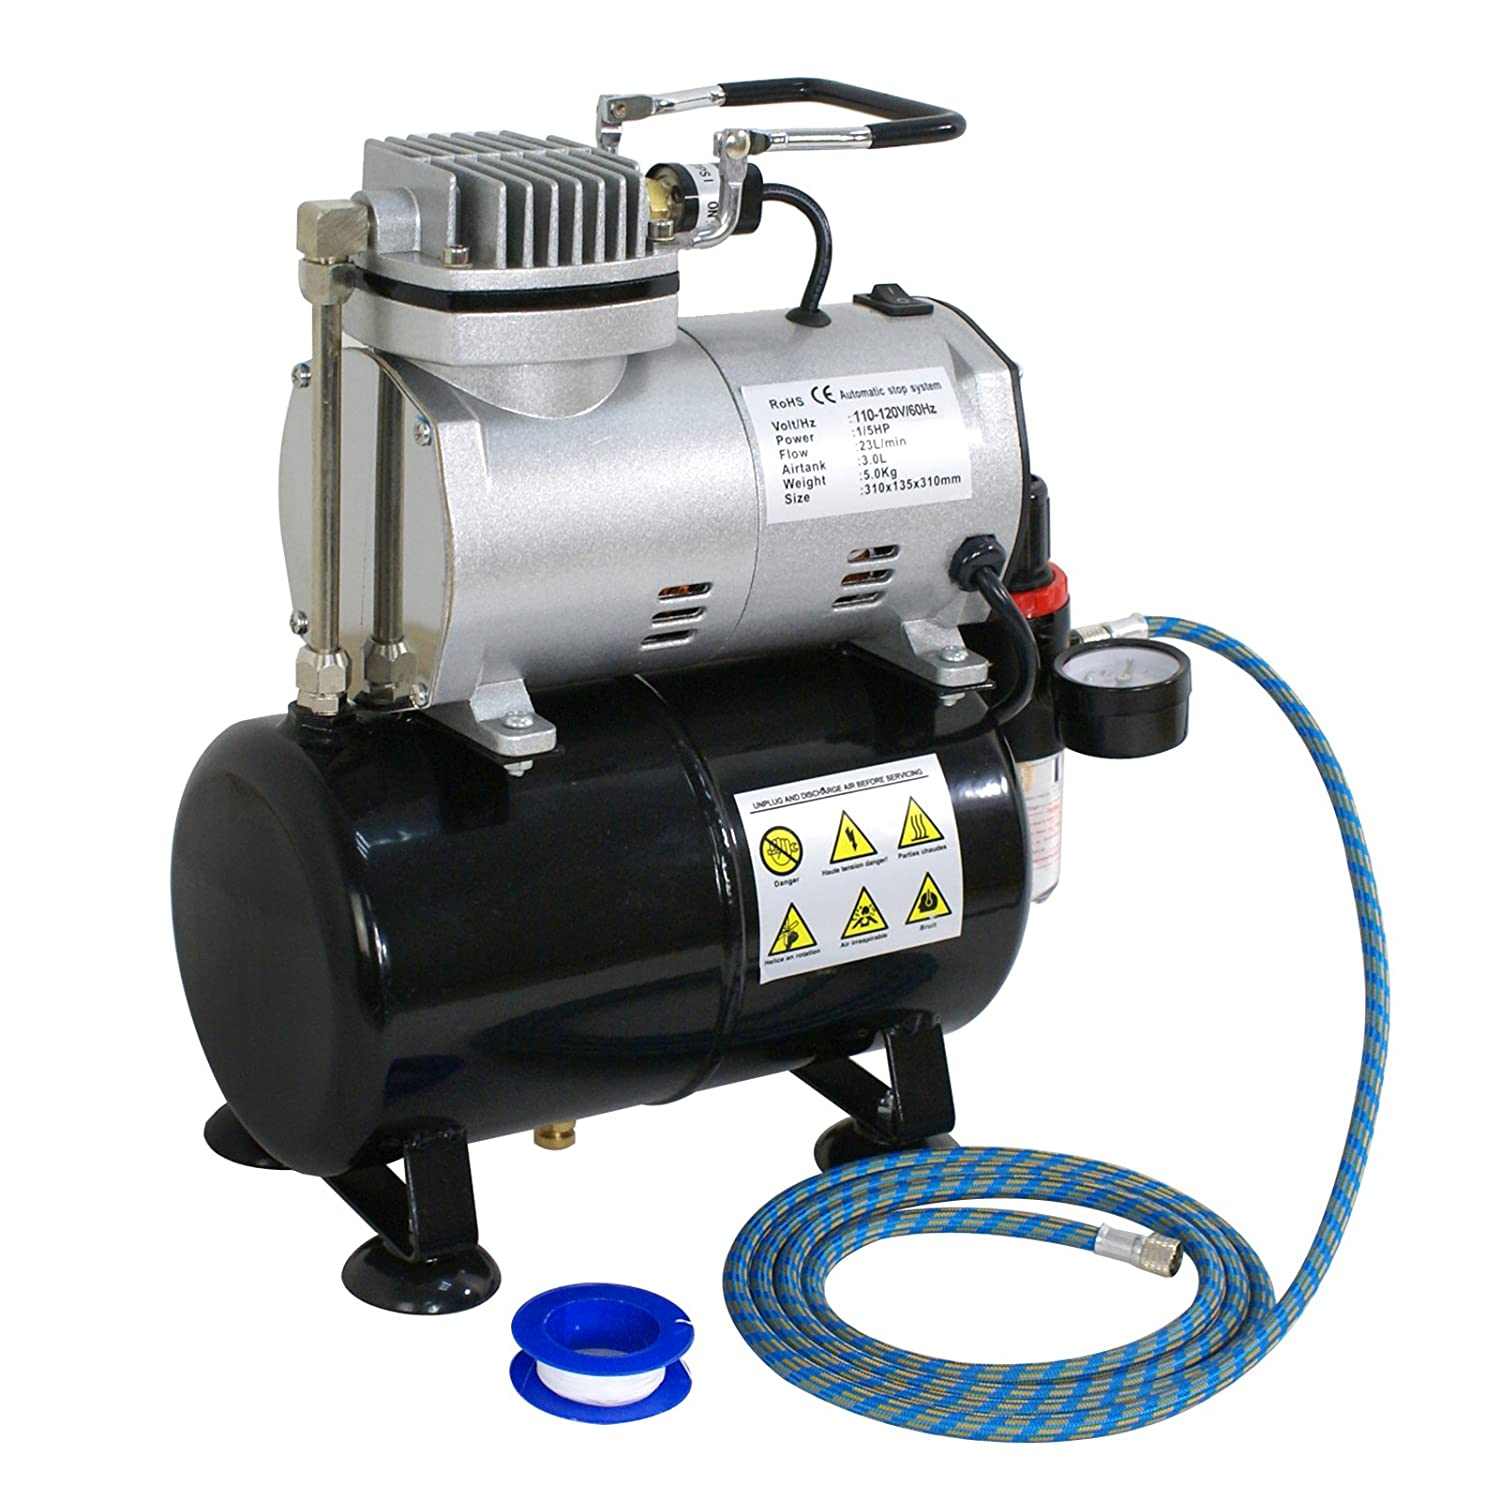 F2C TC-20BK Airbrush Multi-Purpose Pro Dual-Action 1//5HP Single Piston Quiet Air Compressor Airbrush Kit with 3 Airbrush Kits and 6FT Hose